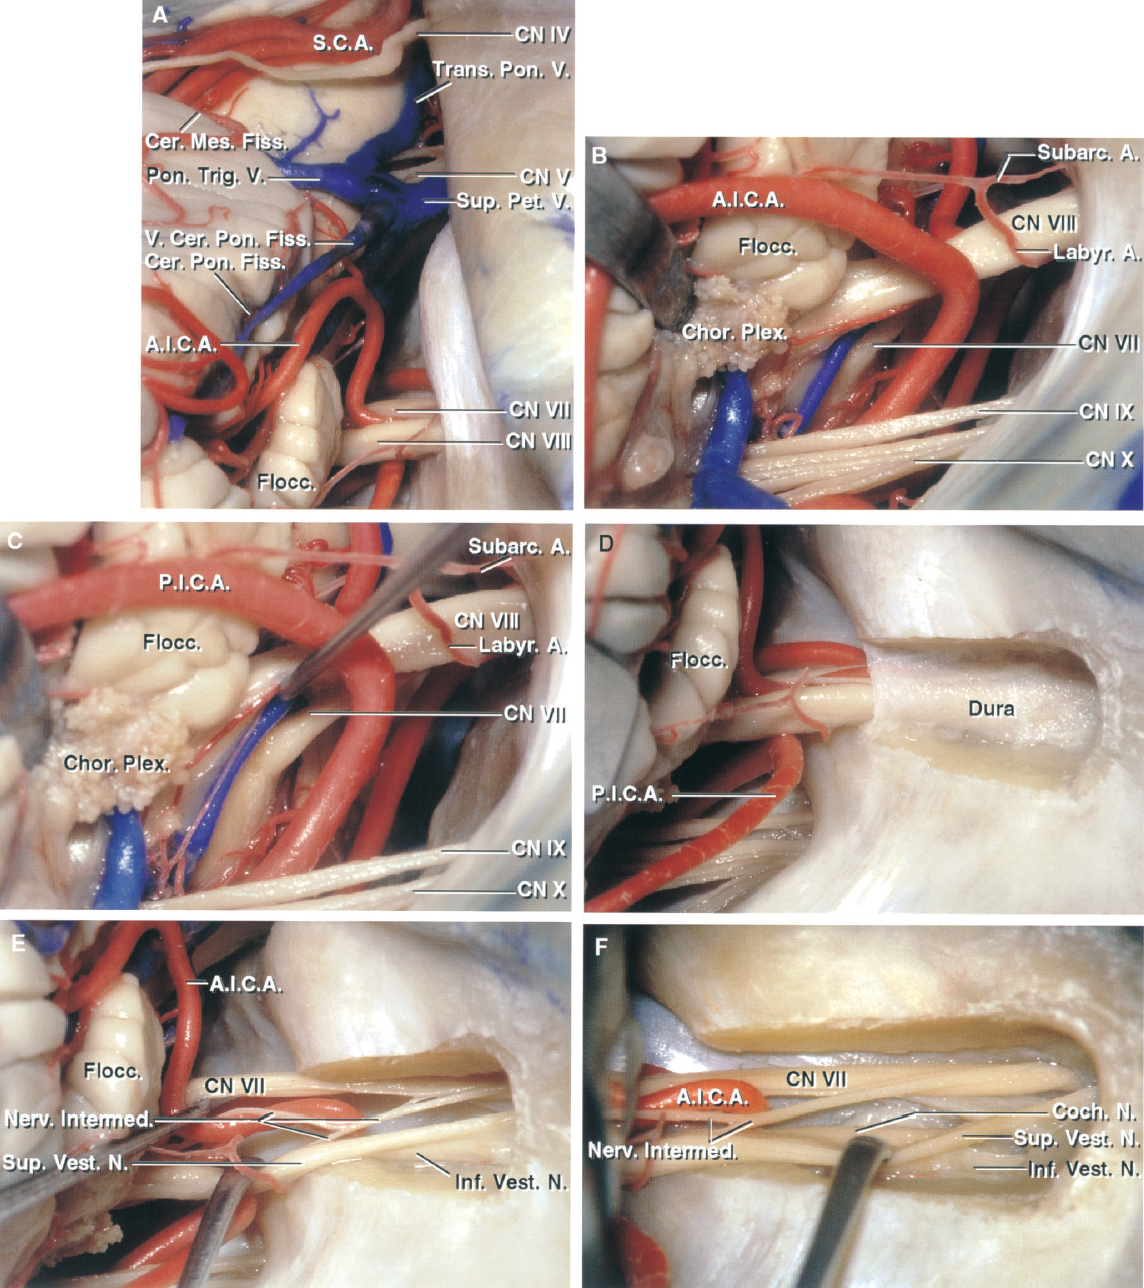 FIGURE 2.13. A, AICA relationships in the right CPA by retrosigmoid approach. The AICA passes laterally between the facial and vestibulocochlear nerves and turns medially to course along the middle cerebellar peduncle and cerebellopontine fissure. A large superior petrosal vein with multiple tributaries, including the pontotrigeminal and transverse pontine veins and the vein of the cerebellopontine fissure, passes behind the trigeminal nerve. The flocculus hides the junction of the facial and vestibulocochlear nerves with the brainstem. B, the flocculus and choroid plexus, which protrudes from the foramen of Luschka, have been elevated to expose the junction of the facial and vestibulocochlear nerves with the brainstem, where the facial nerve is seen below the vestibulocochlear nerve. An AICA branch gives rise to both the subarcuate and labyrinthine arteries. C, a dissector elevates the vestibulocochlear nerve to more clearly define the junction of the facial nerve with the brainstem. The junction of the facial nerve with the brainstem is easier to expose below rather than above the vestibulocochlear nerve. D, the posterior meatal wall has been removed to expose the dura lining the meatus. E, the meatal dura has been opened and the vestibulocochlear nerve displaced downward to expose the facial nerve coursing anterior and superior within the meatus. The nervus intermedius, which arises on the anterior surface of the vestibulocochlear nerve and passes laterally to join the facial nerve, is composed of several rootlets, as is common. F, the cleavage plane between the superior and inferior vestibular nerves has been developed. The cochlear nerve is located anterior to the inferior vestibular nerve. A., artery; A.I.C.A., antero- inferior cerebellar artery; Cer. Mes., cerebellomesencephalic; Cer. Pon., cerebellopontine; Chor., choroid; CN, cranial nerve; Coch., cochlear; Fiss., fissure; Flocc., flocculus; Inf., inferior; Intermed., intermedius; Labyr., labyrinthine; N., 